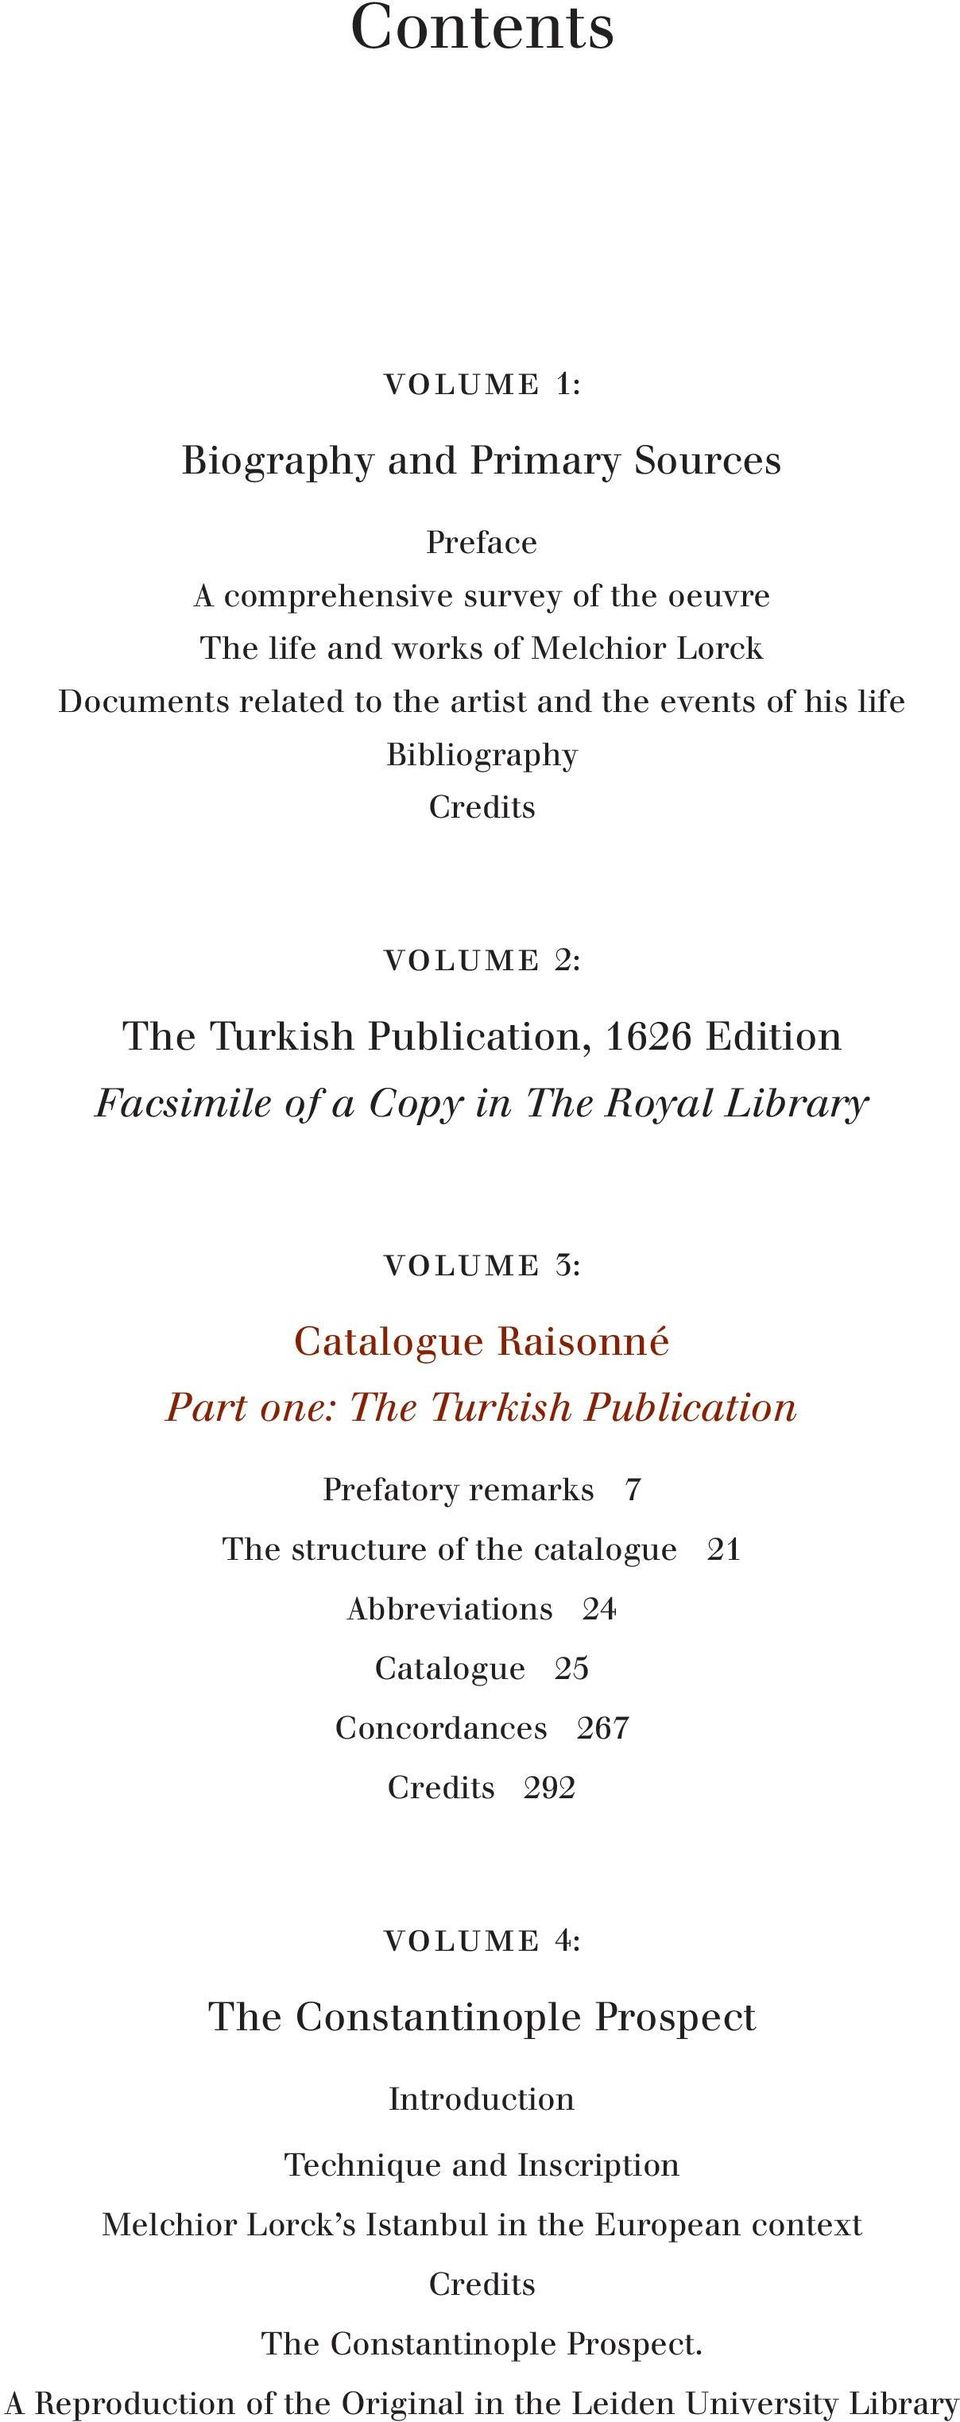 Turkish Publication Prefatory remarks 7 The structure of the catalogue 21 Abbreviations 24 Catalogue 25 Concordances 267 Credits 292 volume 4: The Constantinople Prospect